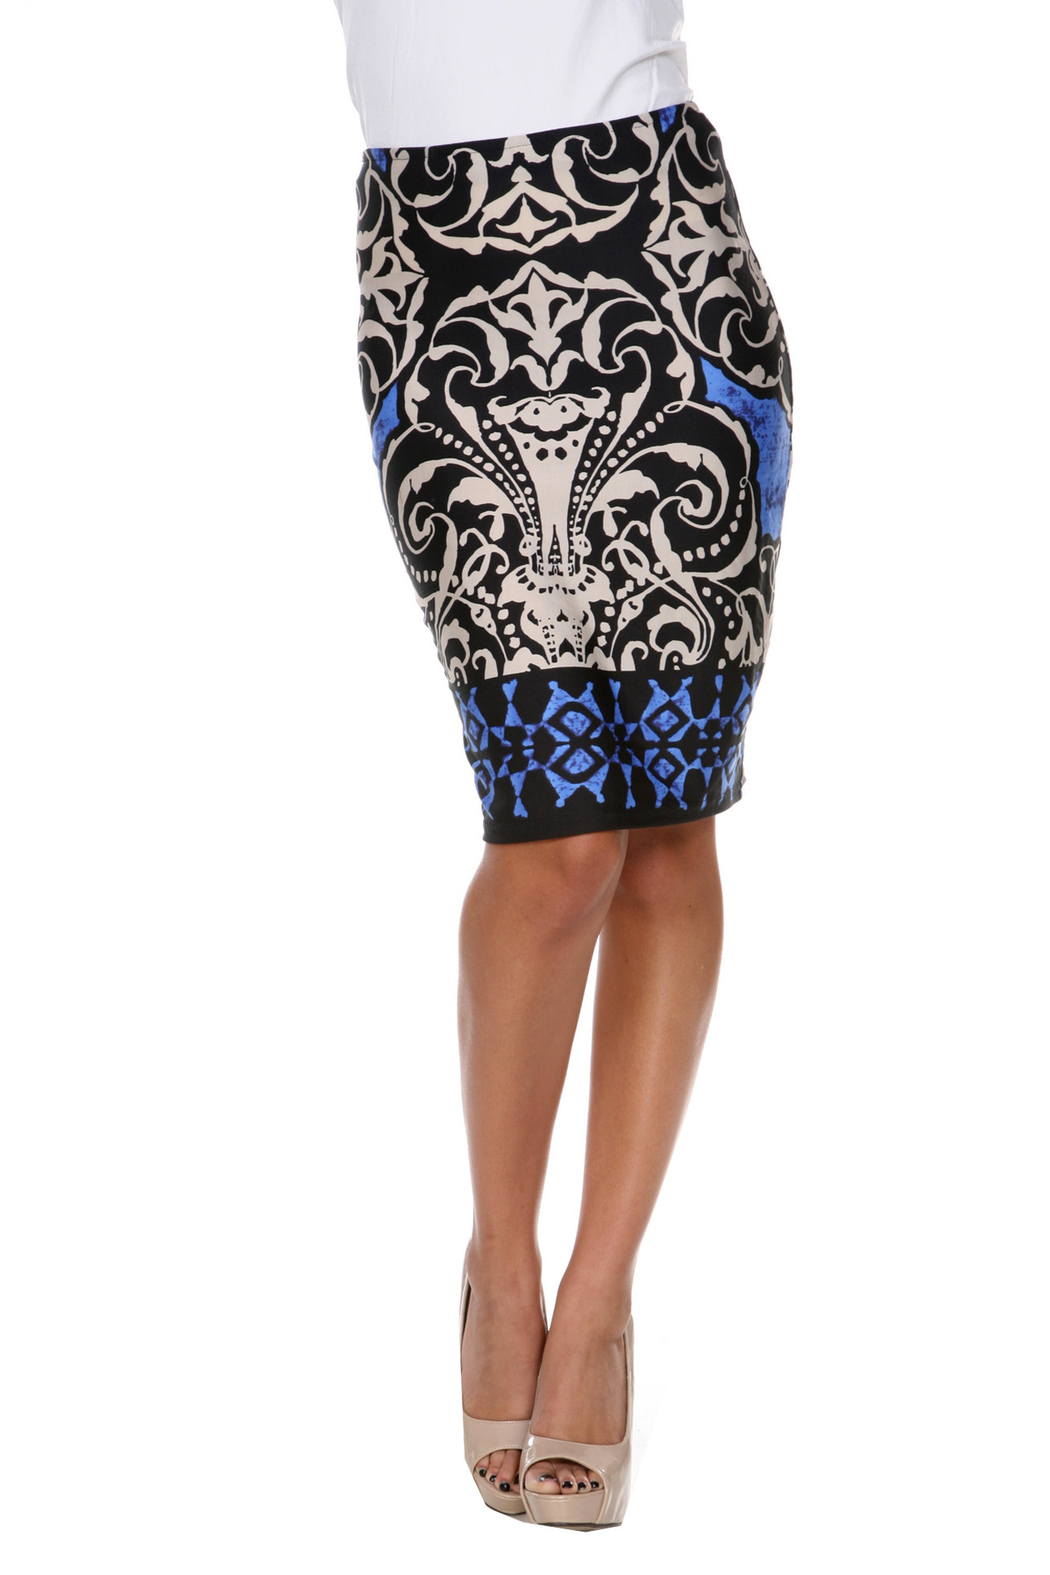 WhiteMark White Mark's Victorian Print Pencil Skirt - Front Cropped Image